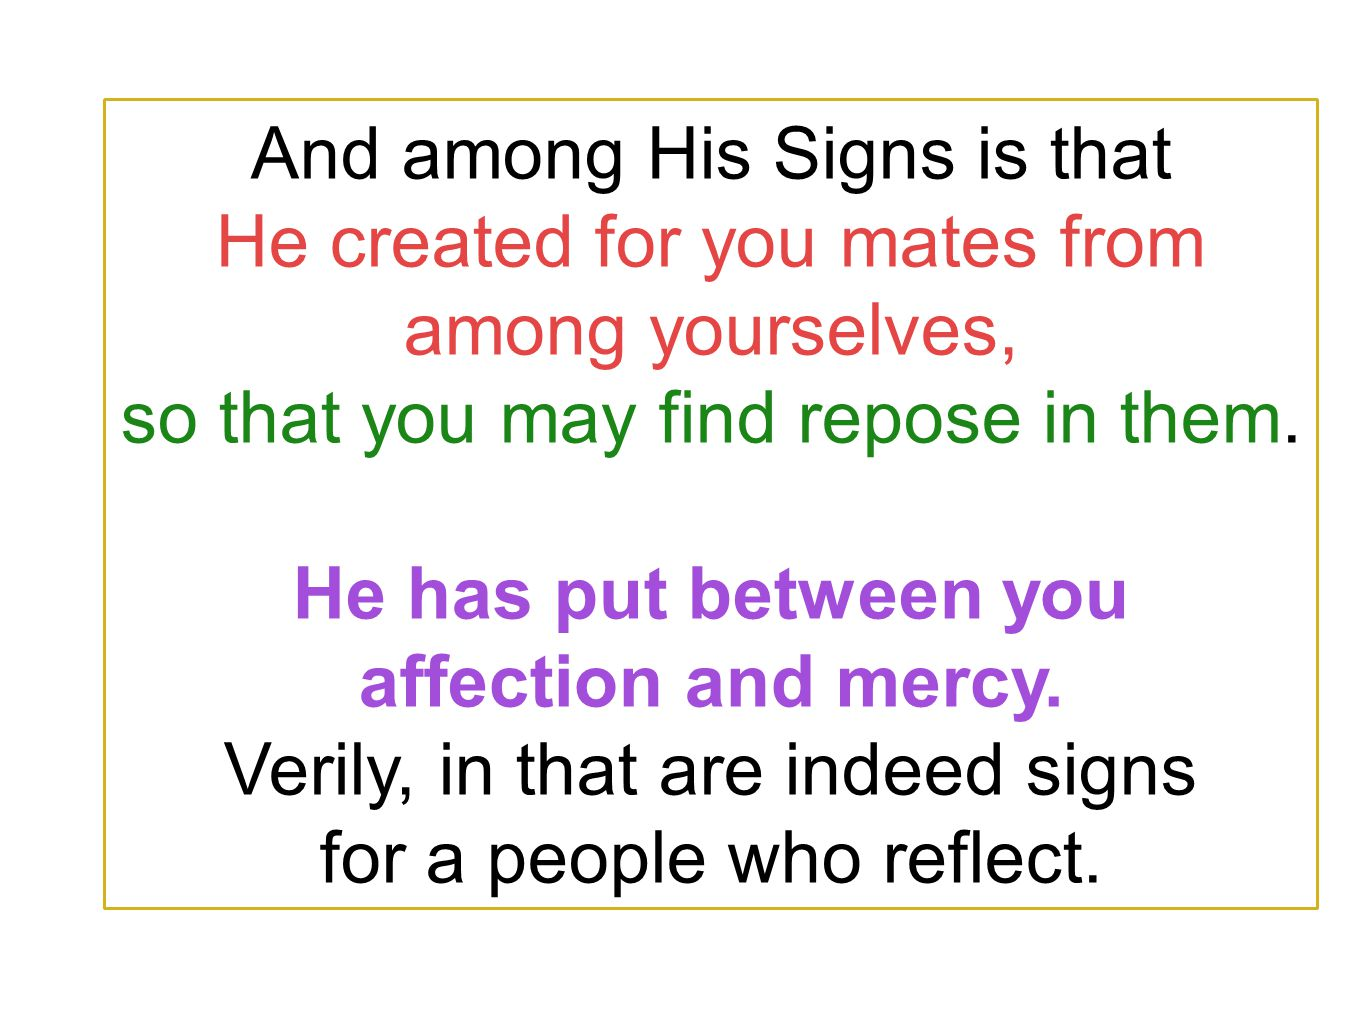 And among His Signs is that He created for you mates from among yourselves, so that you may find repose in them. He has put between you affection and